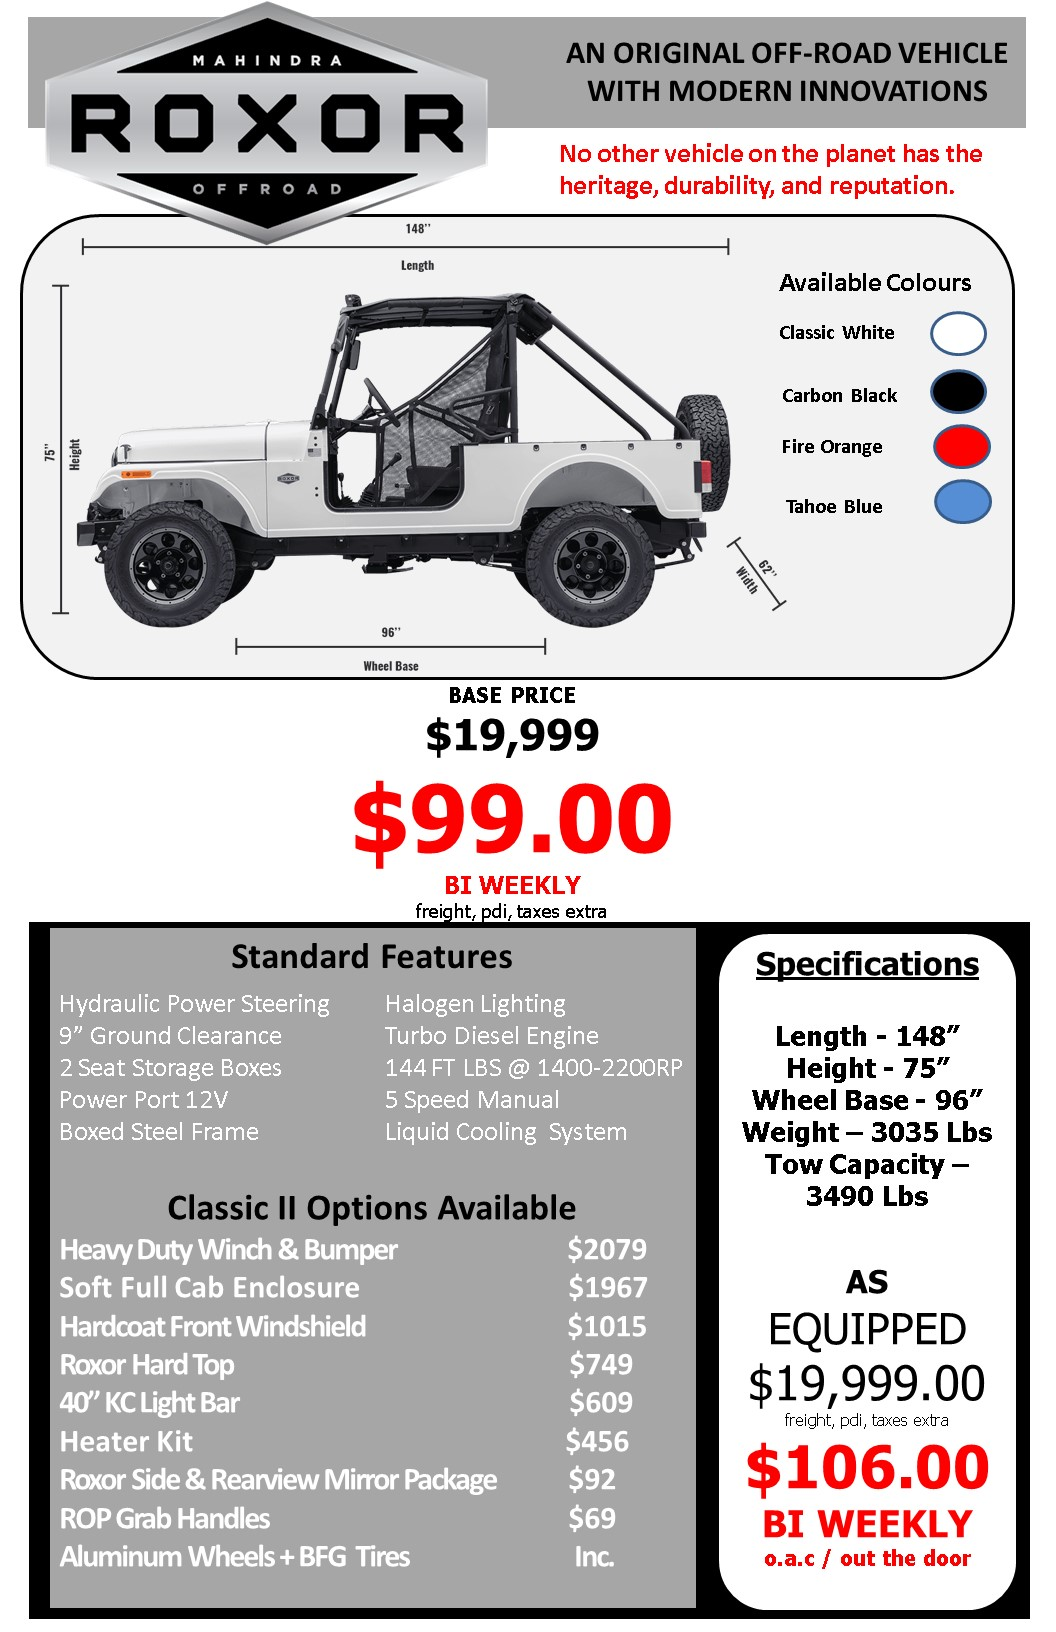 Roxor Off-Road Vehicle Specs and Pricing